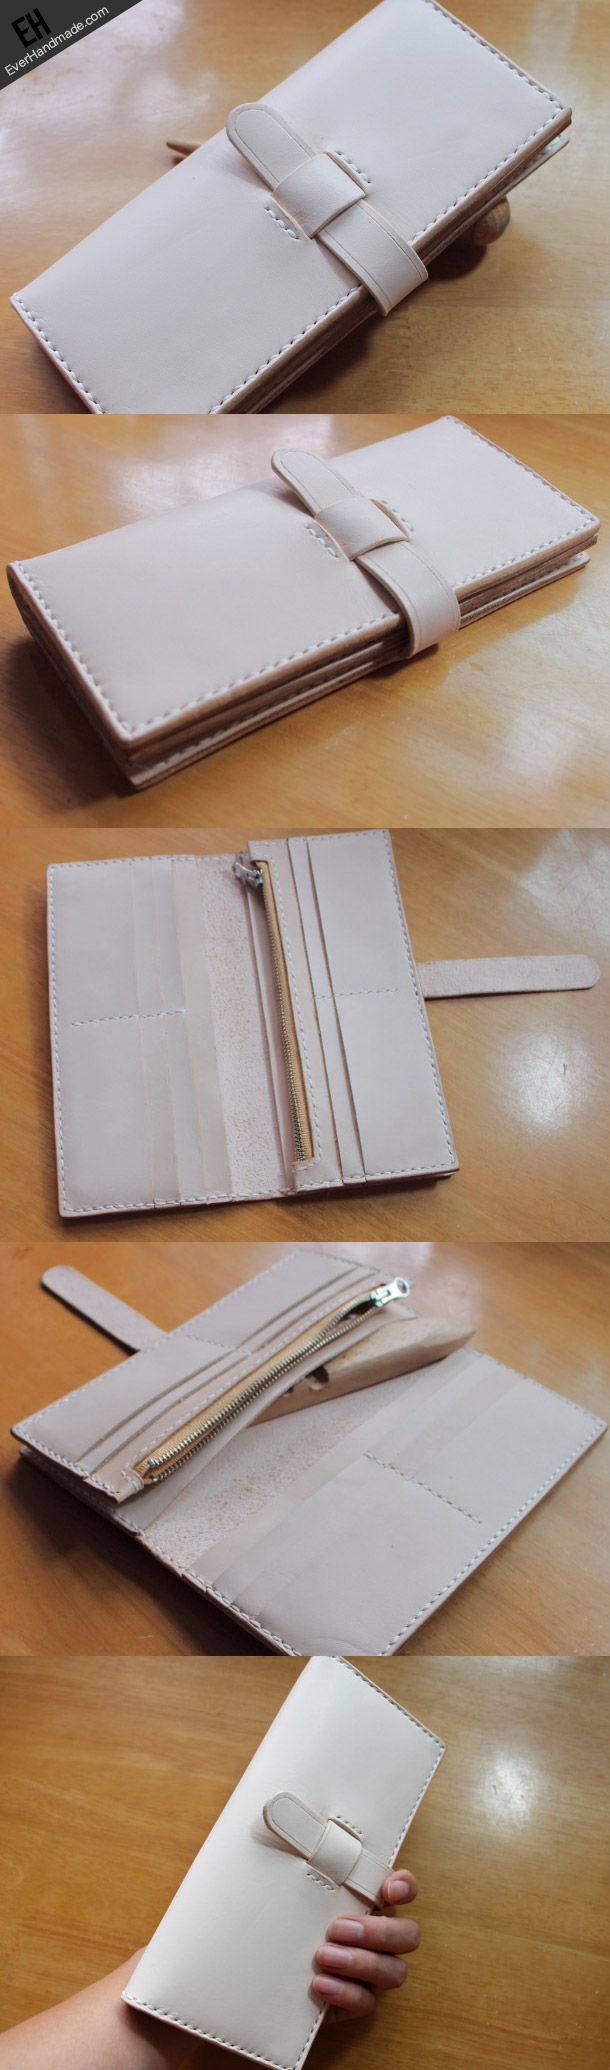 Handmade vintage purse leather wallet long phone wallet clutch wallet beige women #leatherwallets